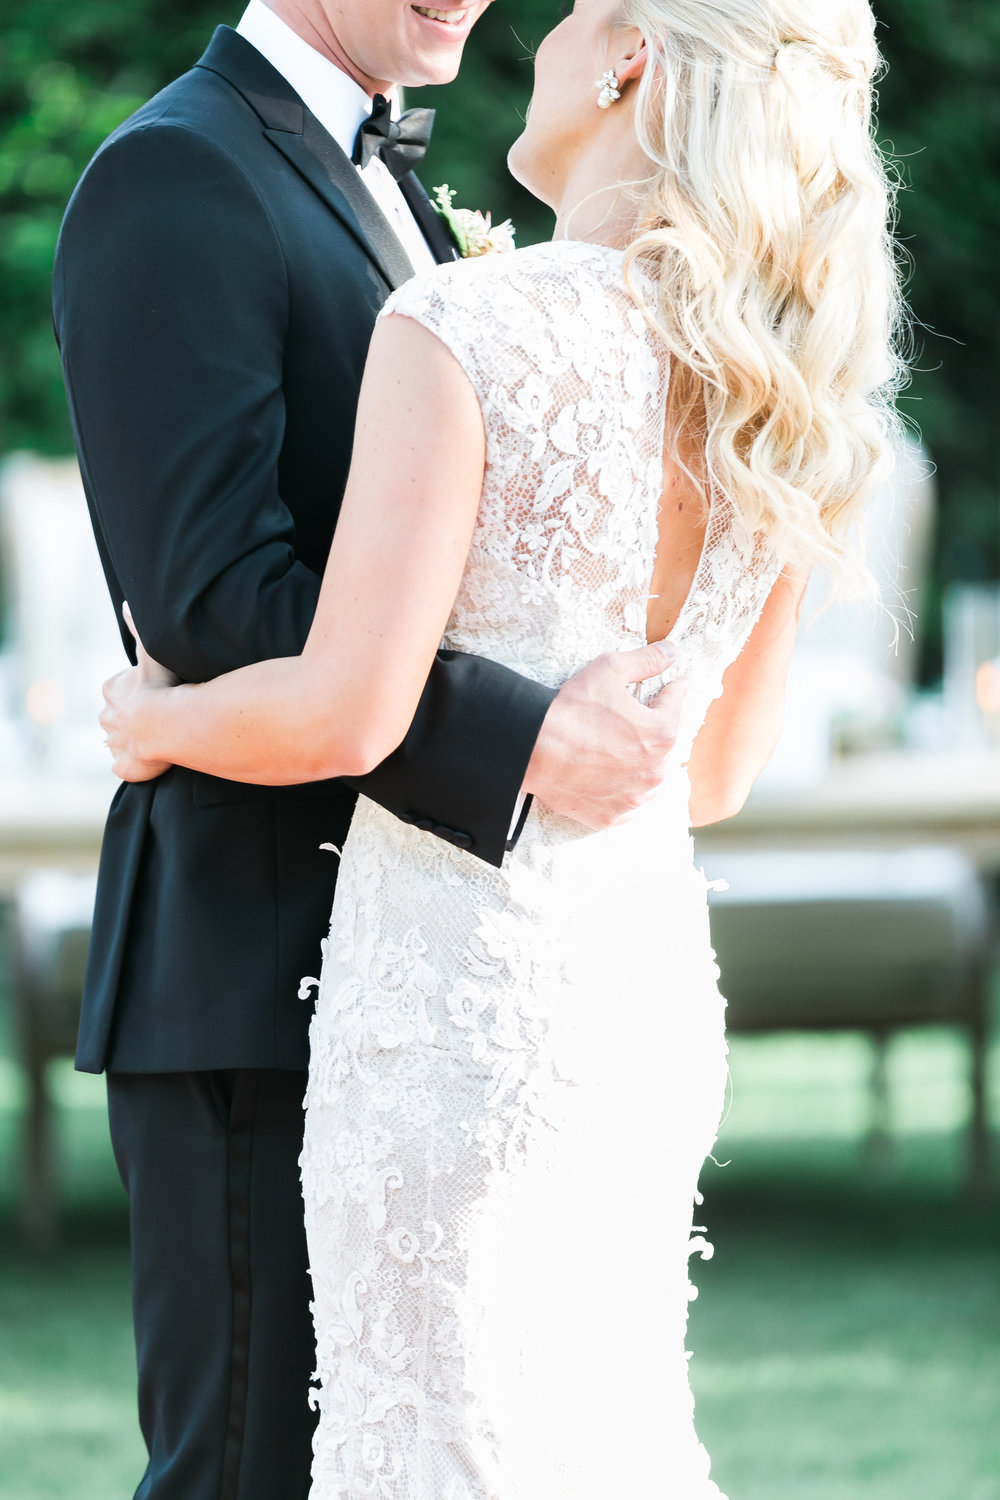 The first dance gave guests a chance to really see the beautiful lace detail on the bride's wedding dress.     Destination Wedding Planner  ANDREA EPPOLITO EVENTS  · Images by  J.ANNE P  HOTOOGRAPHY  · Video  HOO FILMS  · Venue Ritz Carlton Bacara Santa Barbara ·Gown MONIQUE LHULLIER